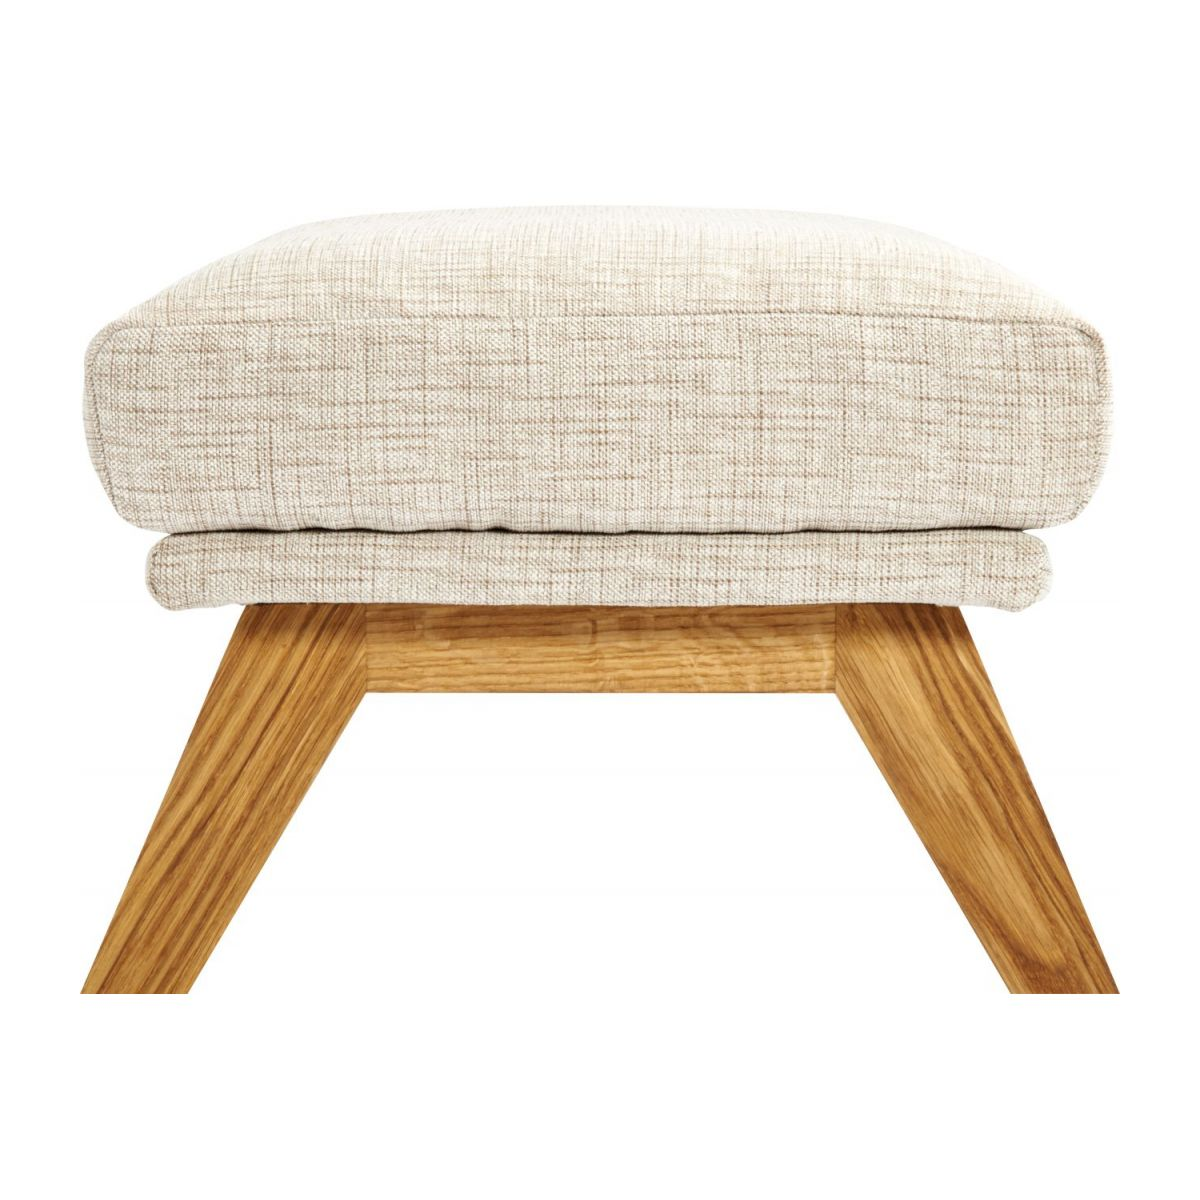 Footstool in Ancio fabric, nature with oak legs n°5